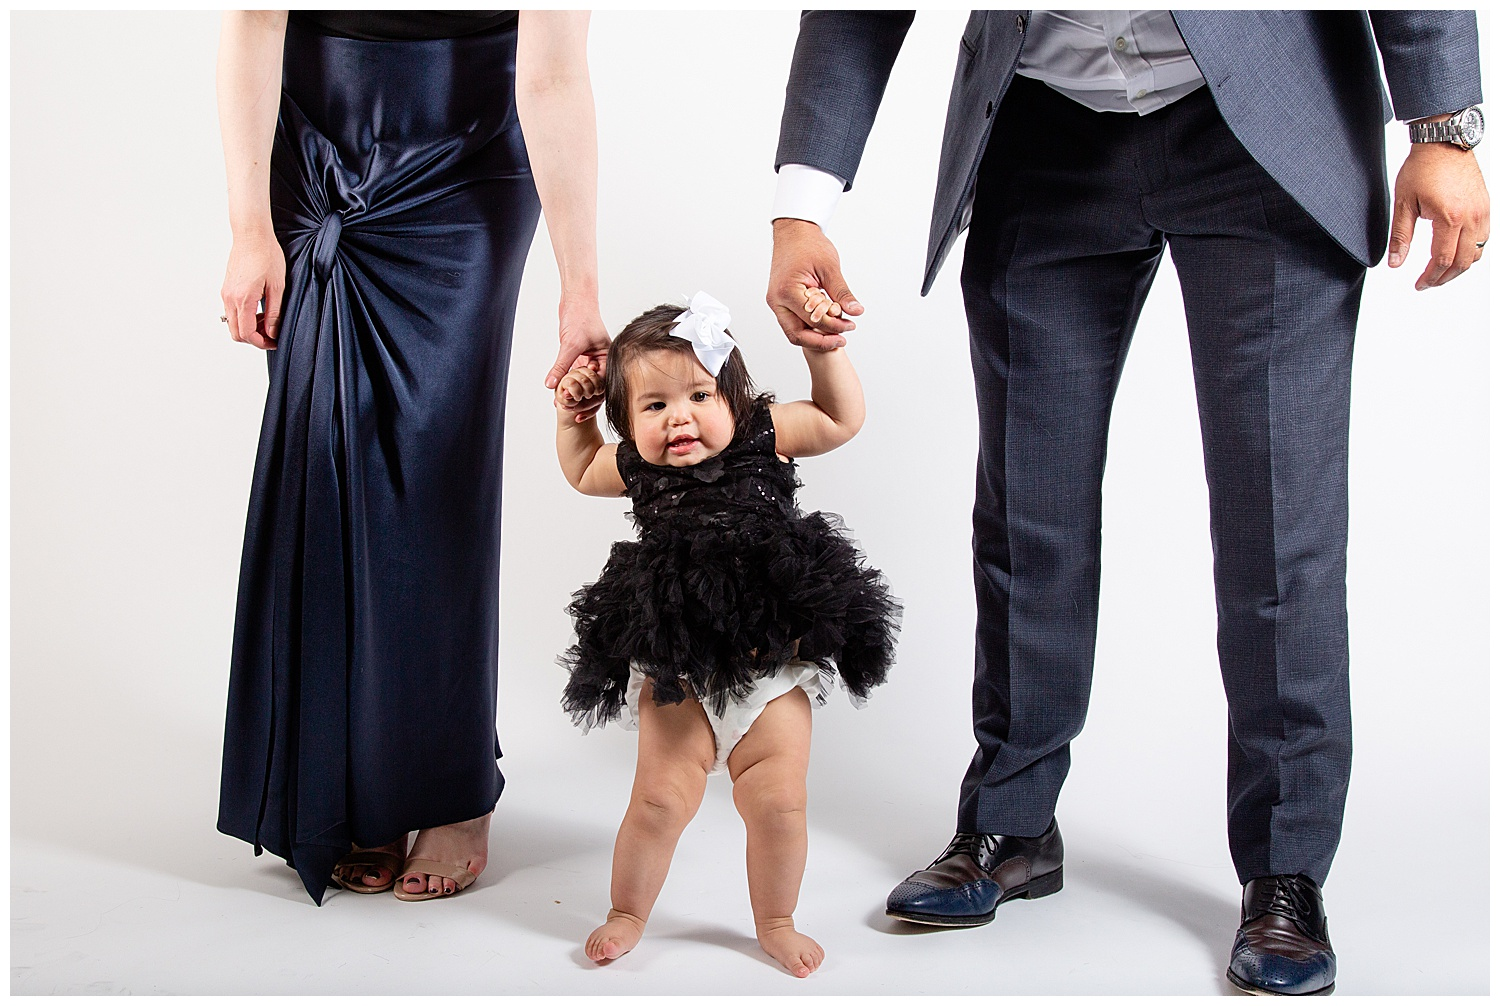 emily-belson-photography-dc-family-photographer-06.jpg